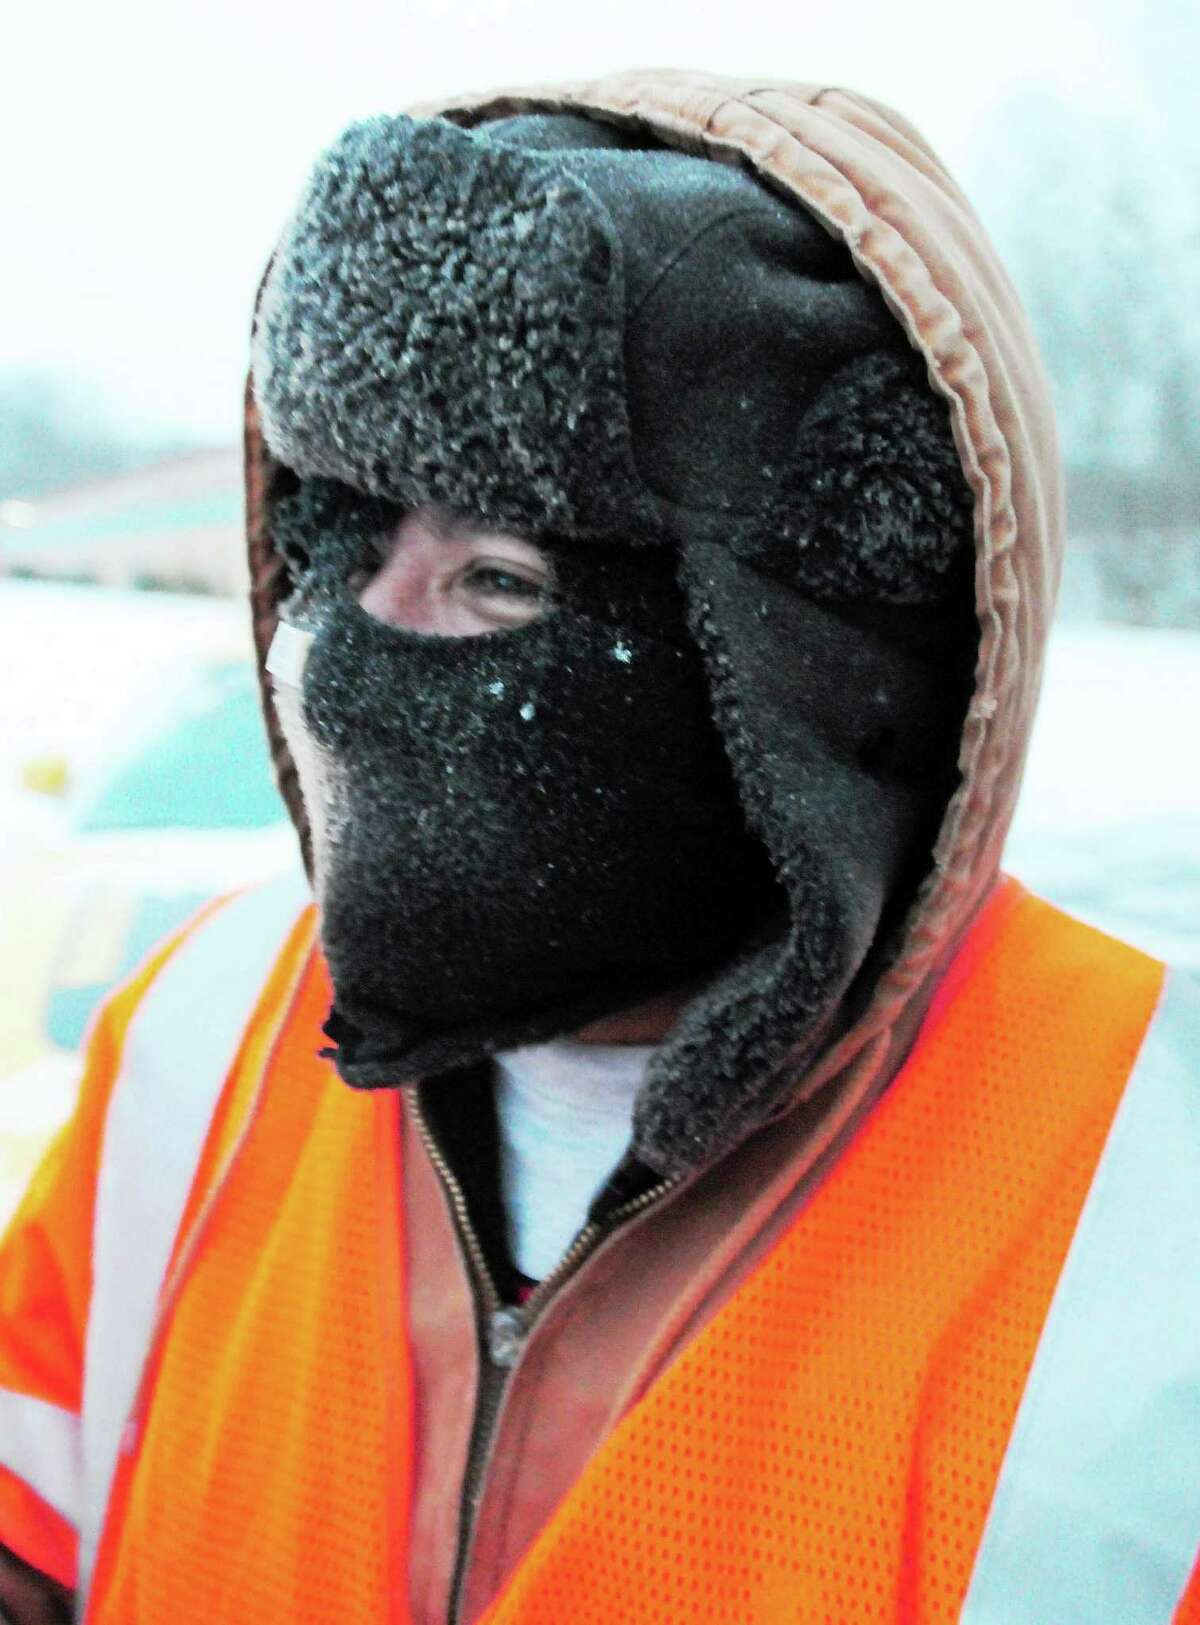 An employee for DeMars Landscaping of Branford faces the cold with warm head gear as he shovels snow in a shopping plaza at 365 East Main St. Friday morning.